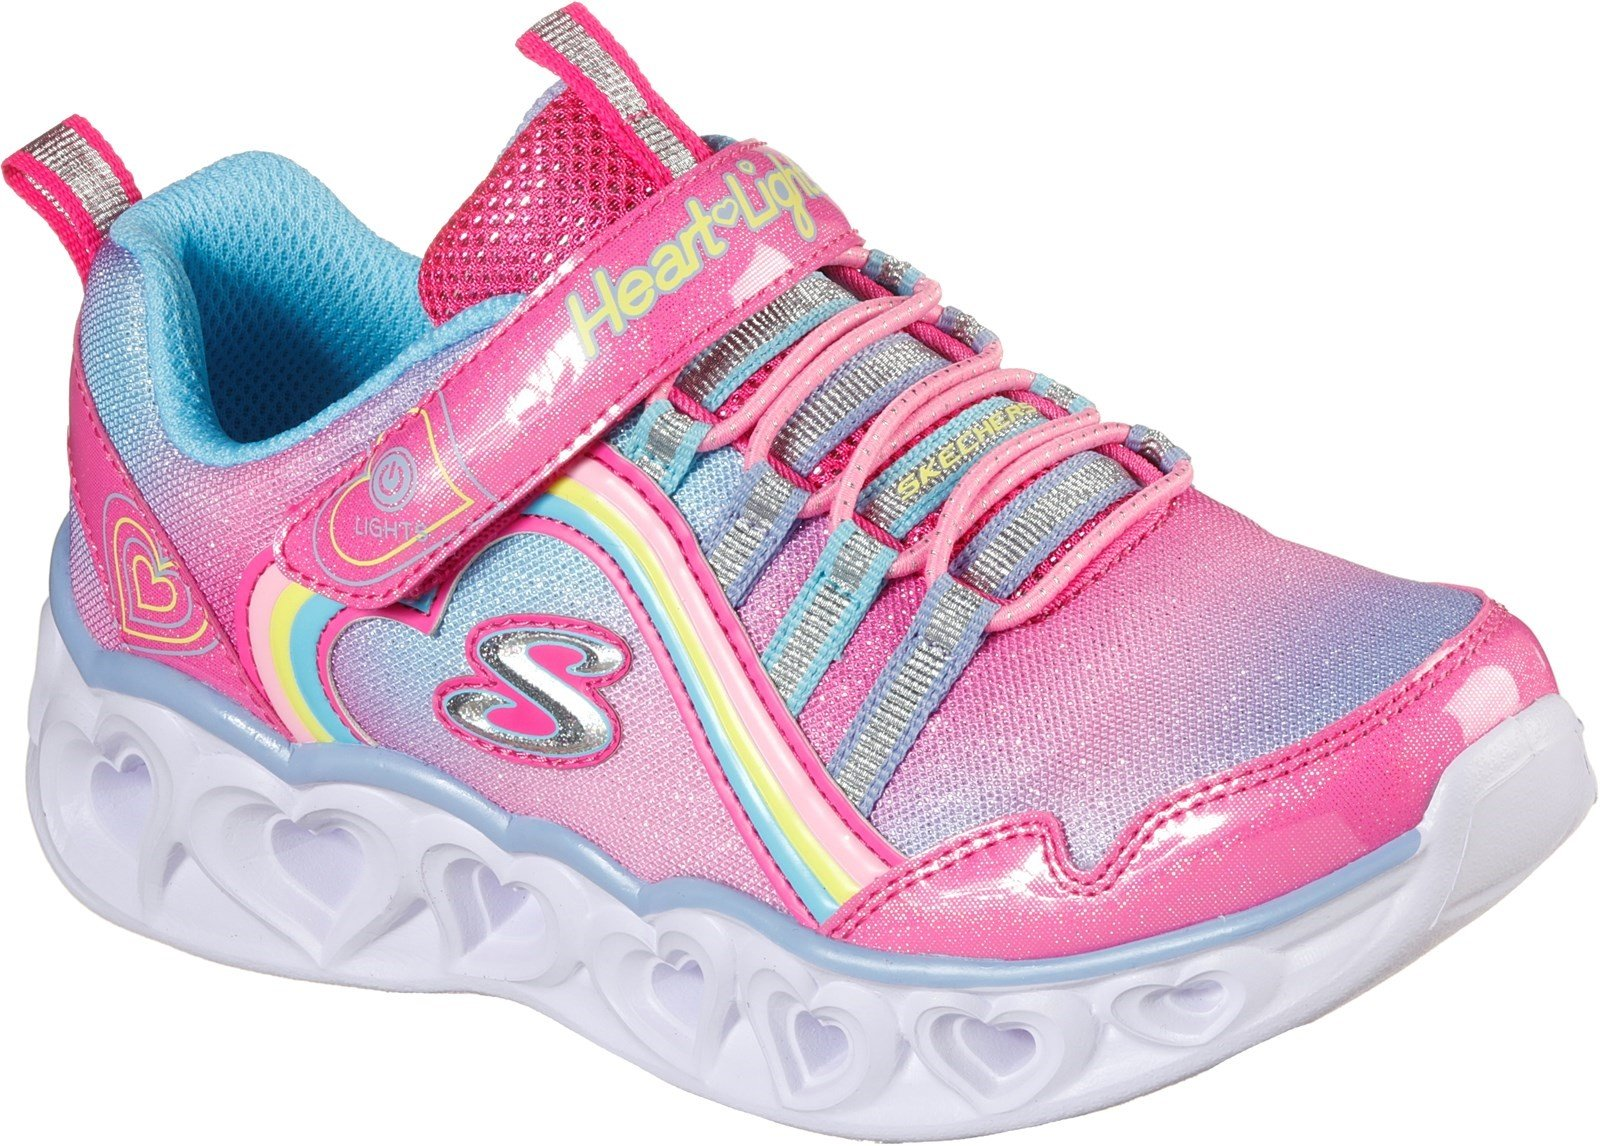 Skechers Kid's Heart Lights Rainbow Lux Trainer Various Colours 32089 - Pink/Multi 9.5